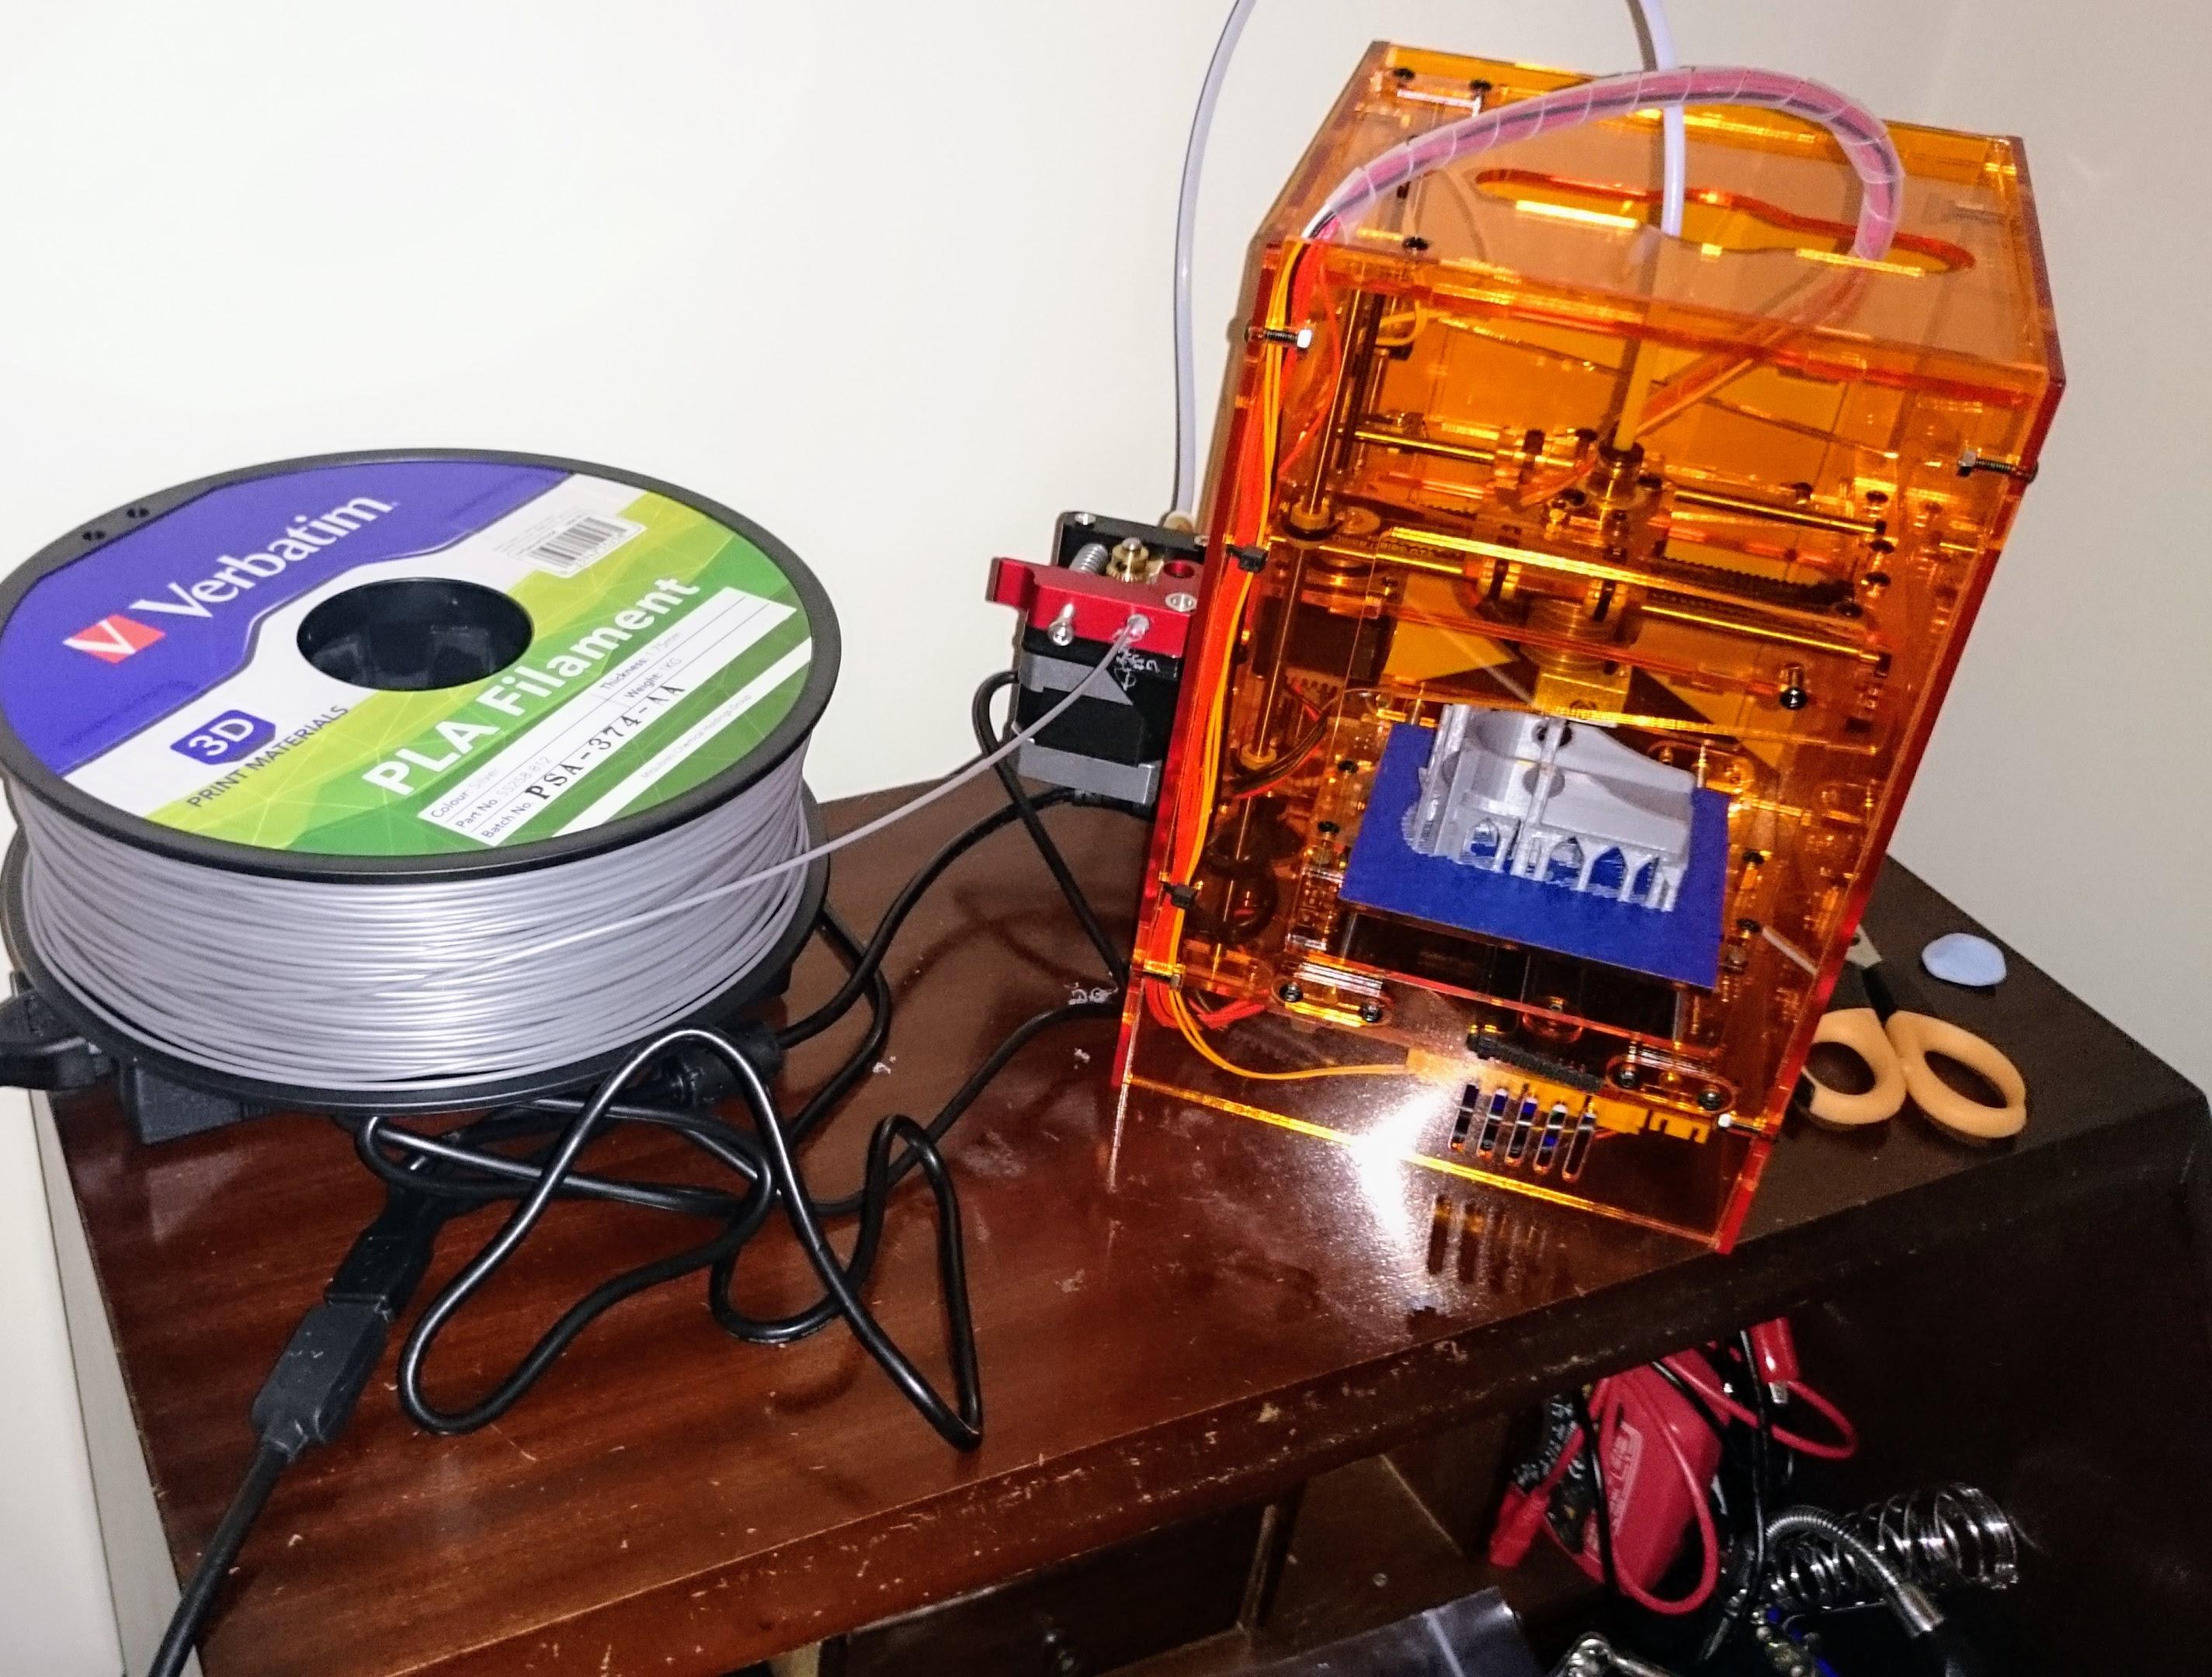 My first 3D printer